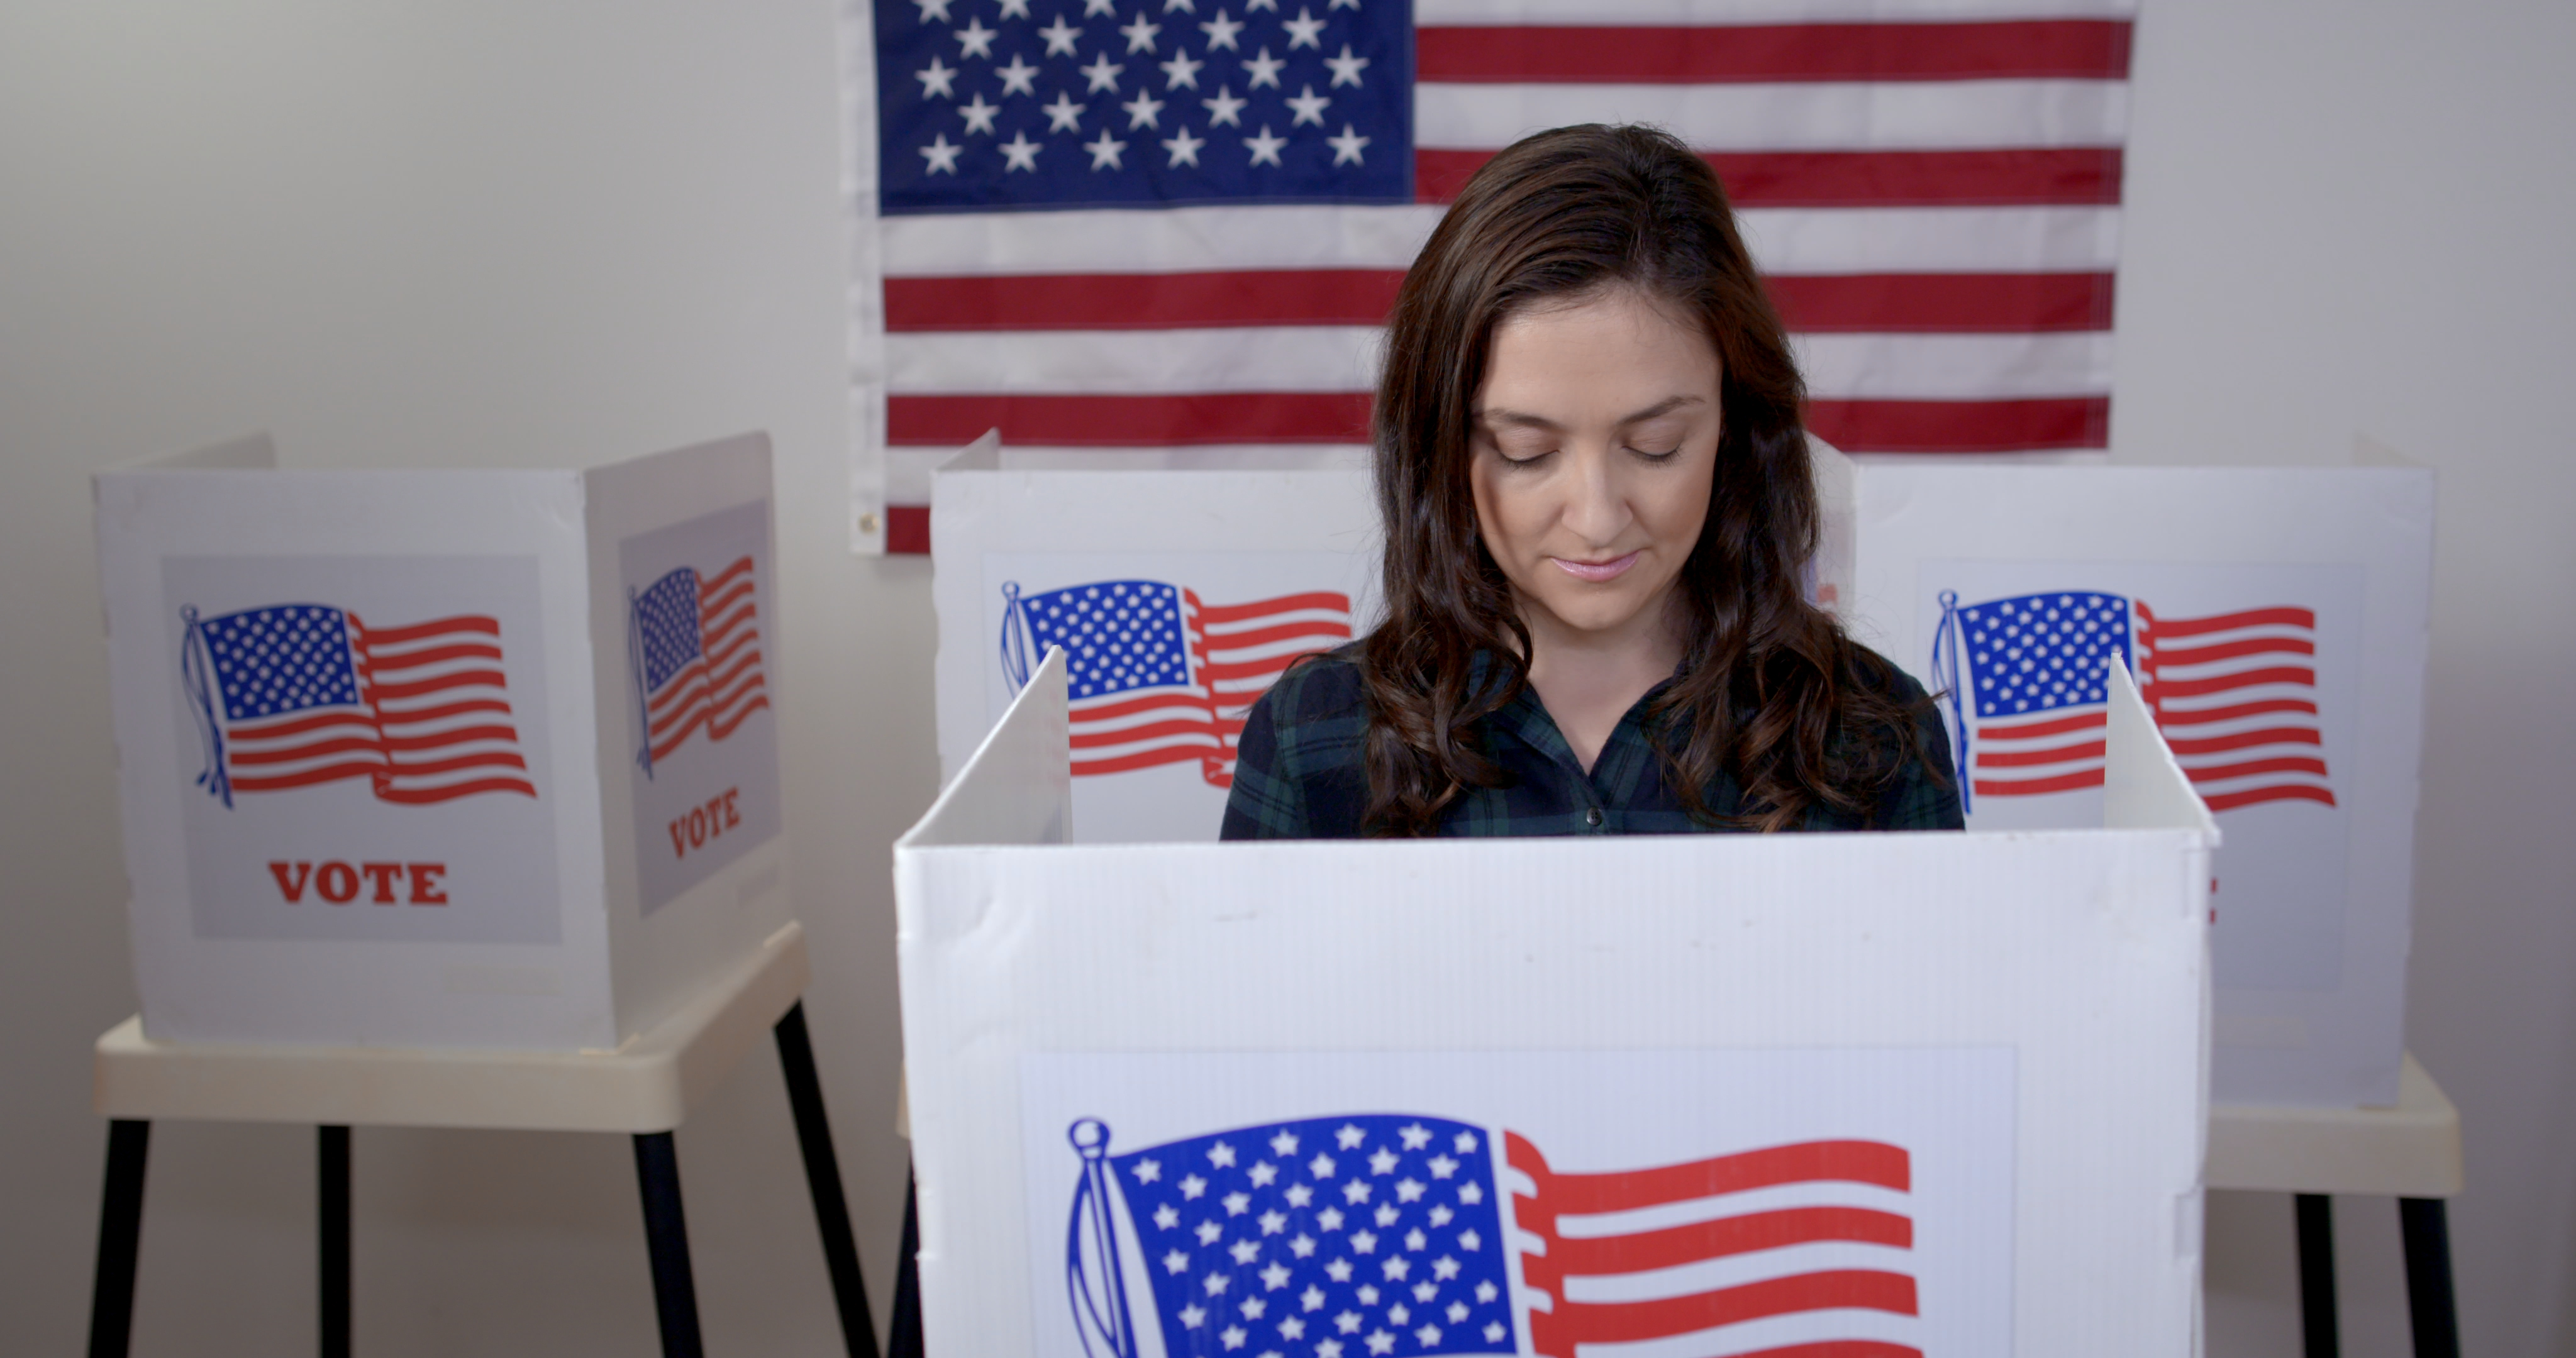 Know your rights: What to do if you face trouble at the polls (Photo: SBG){&nbsp;}<p></p>